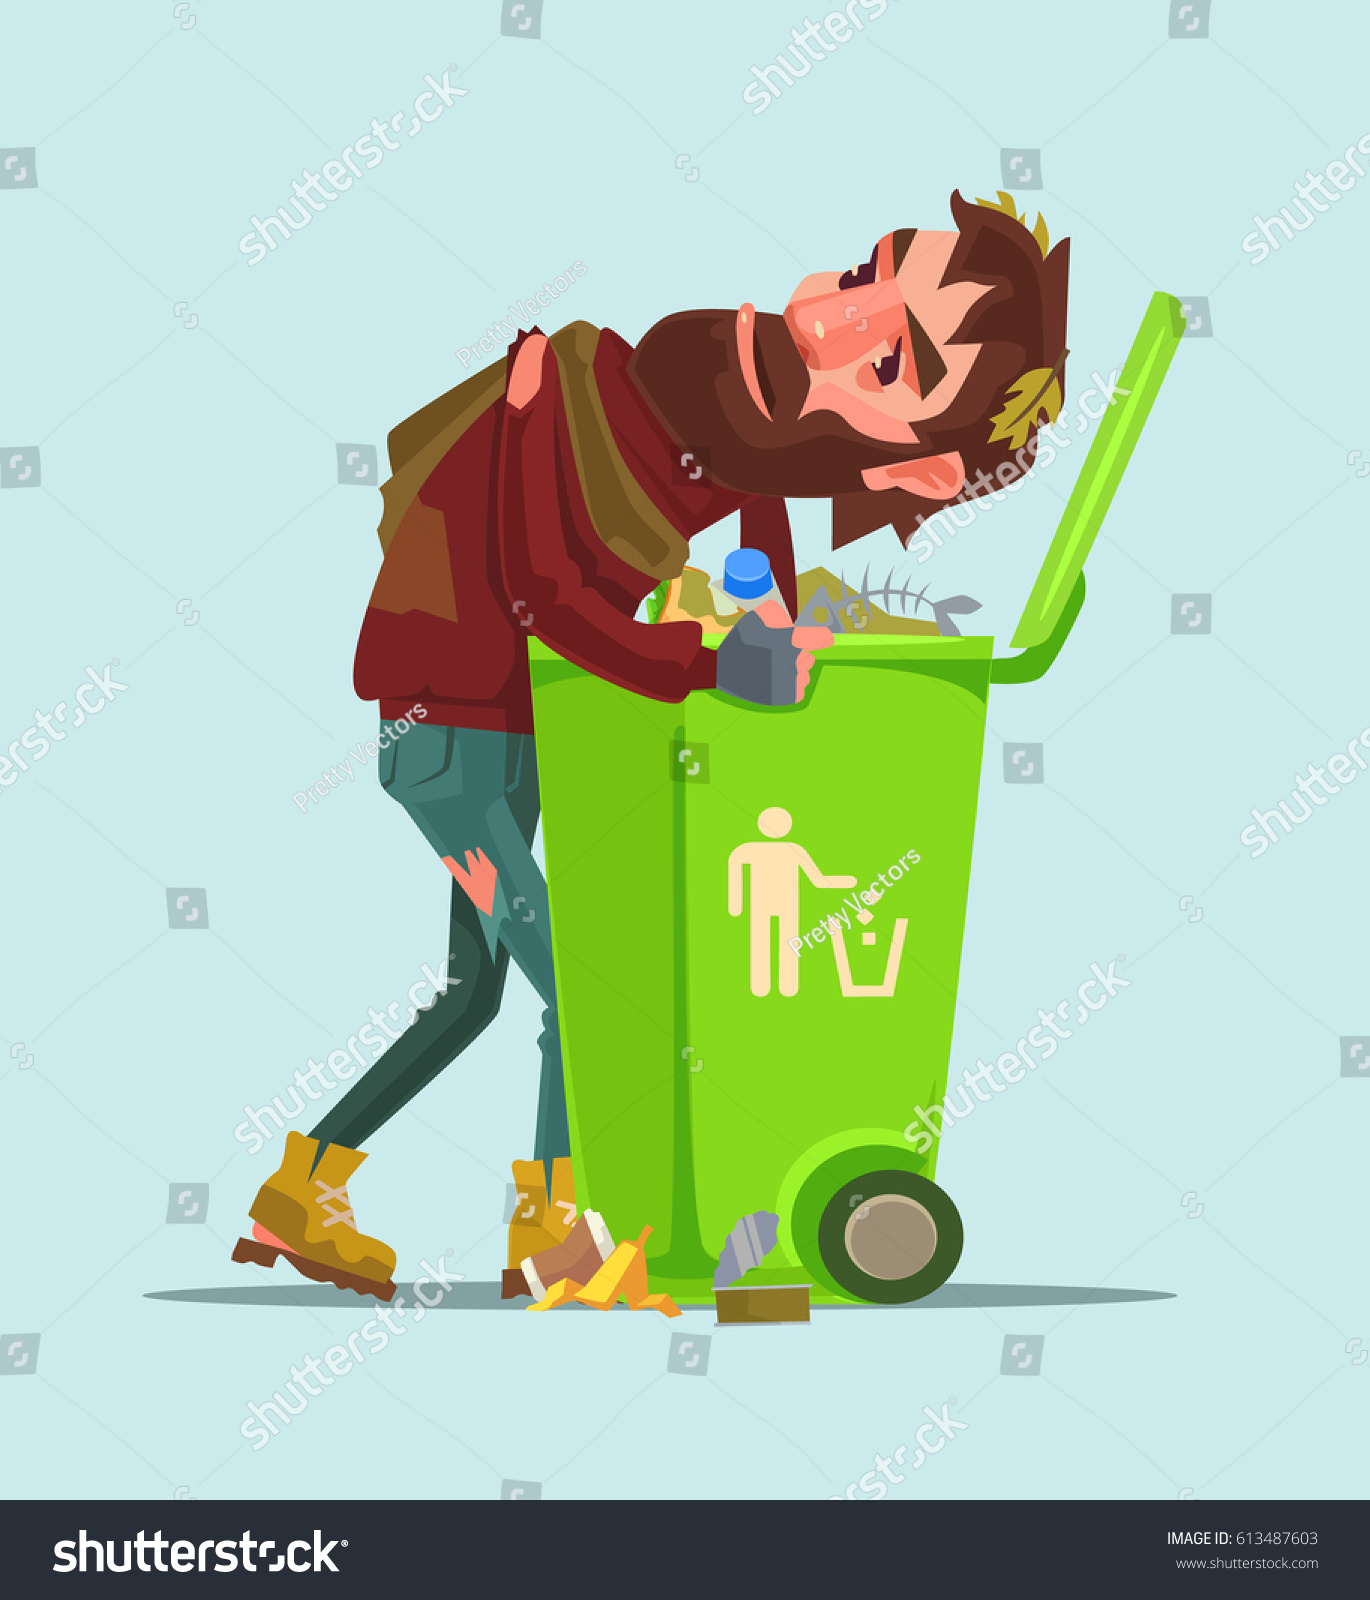 Unemployed Homeless Man Look Food Trash Stock Vector Royalty Free ...